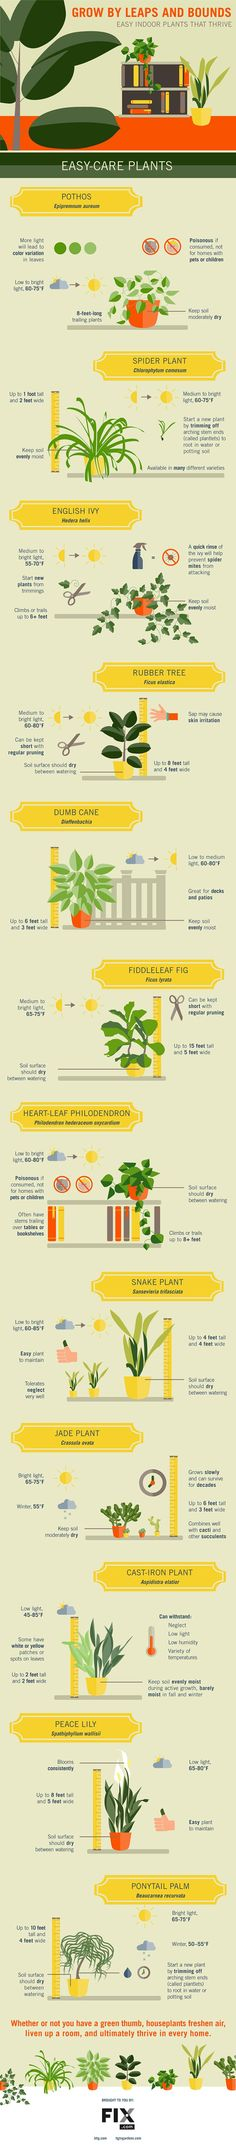 Infographic of easy to grow houseplants and simple tips for caring for them: fiddle leaf fig, spider plant, pothos, philodendron, english ivy, snake plant, jade